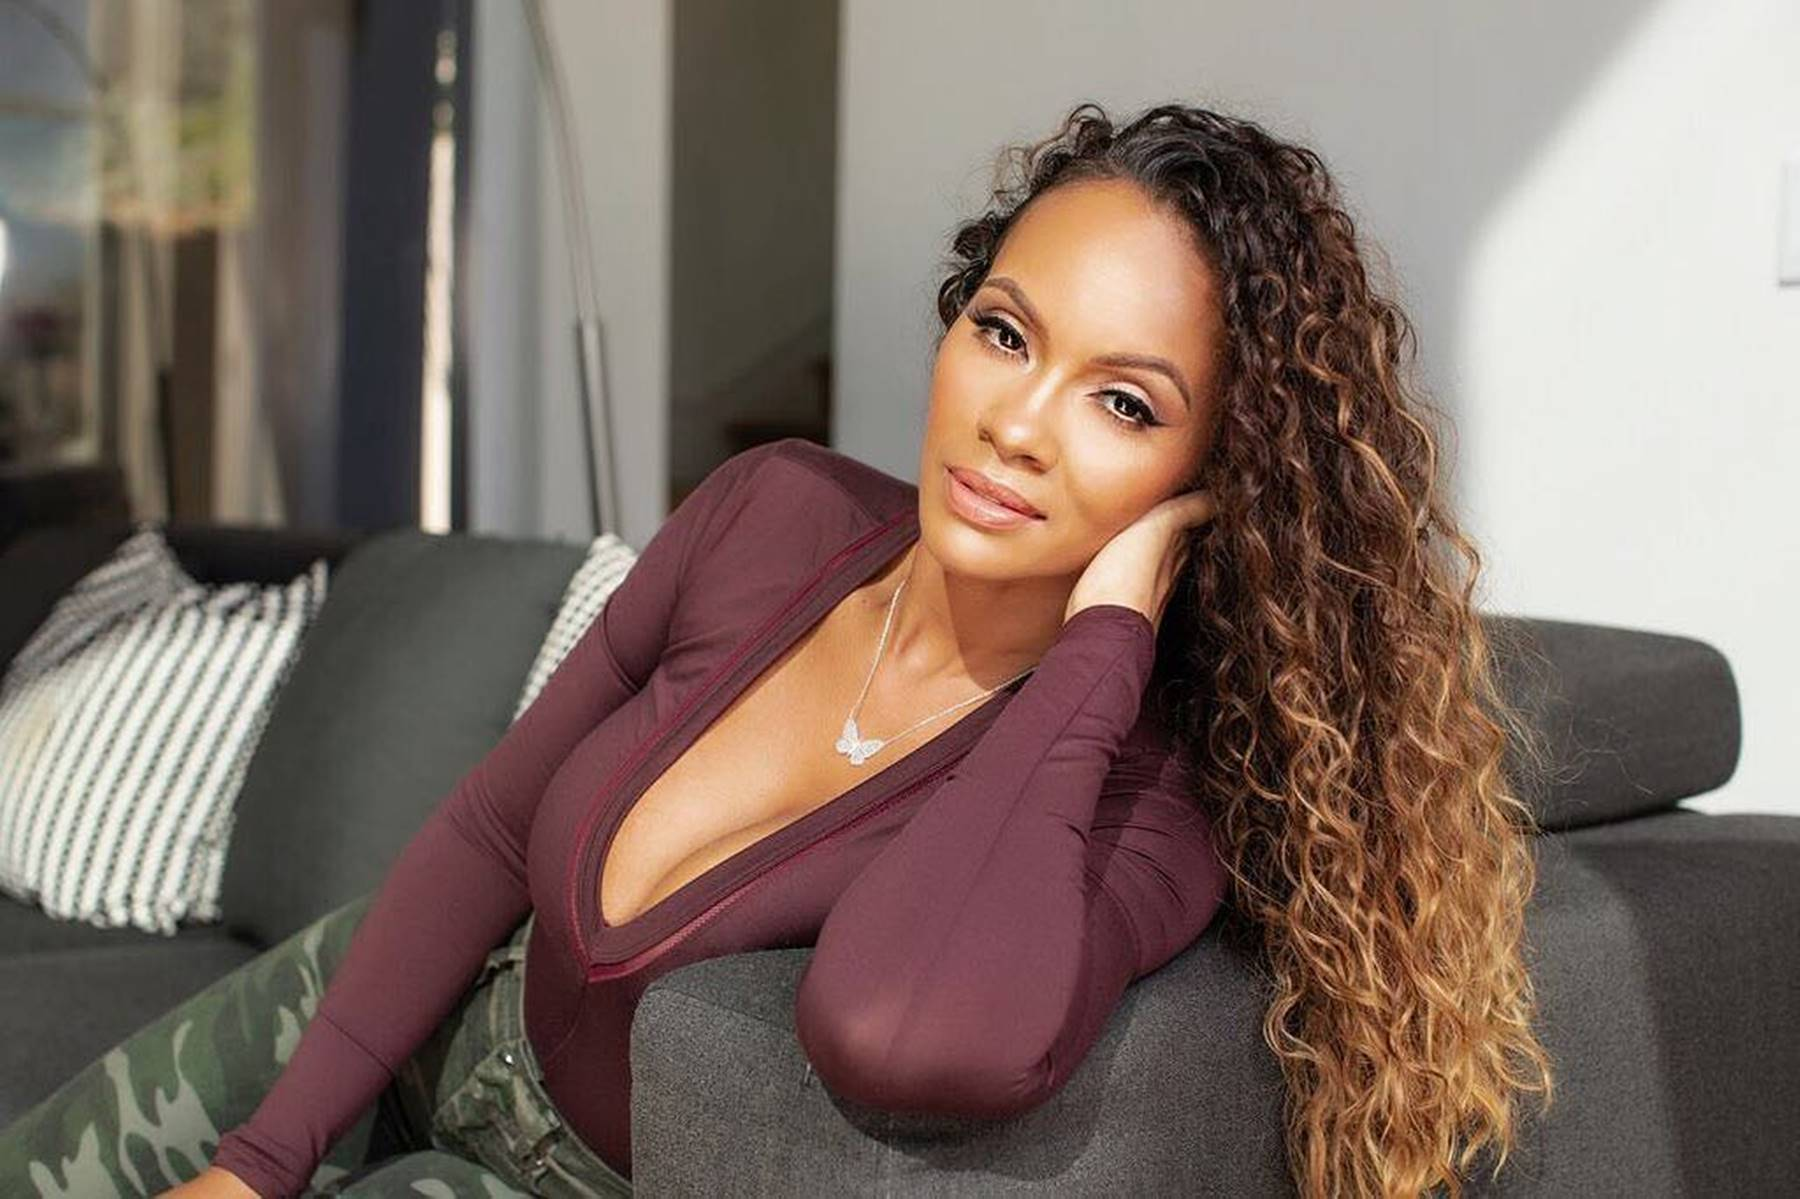 Photos Evelyn Lozada naked (47 images), Feet